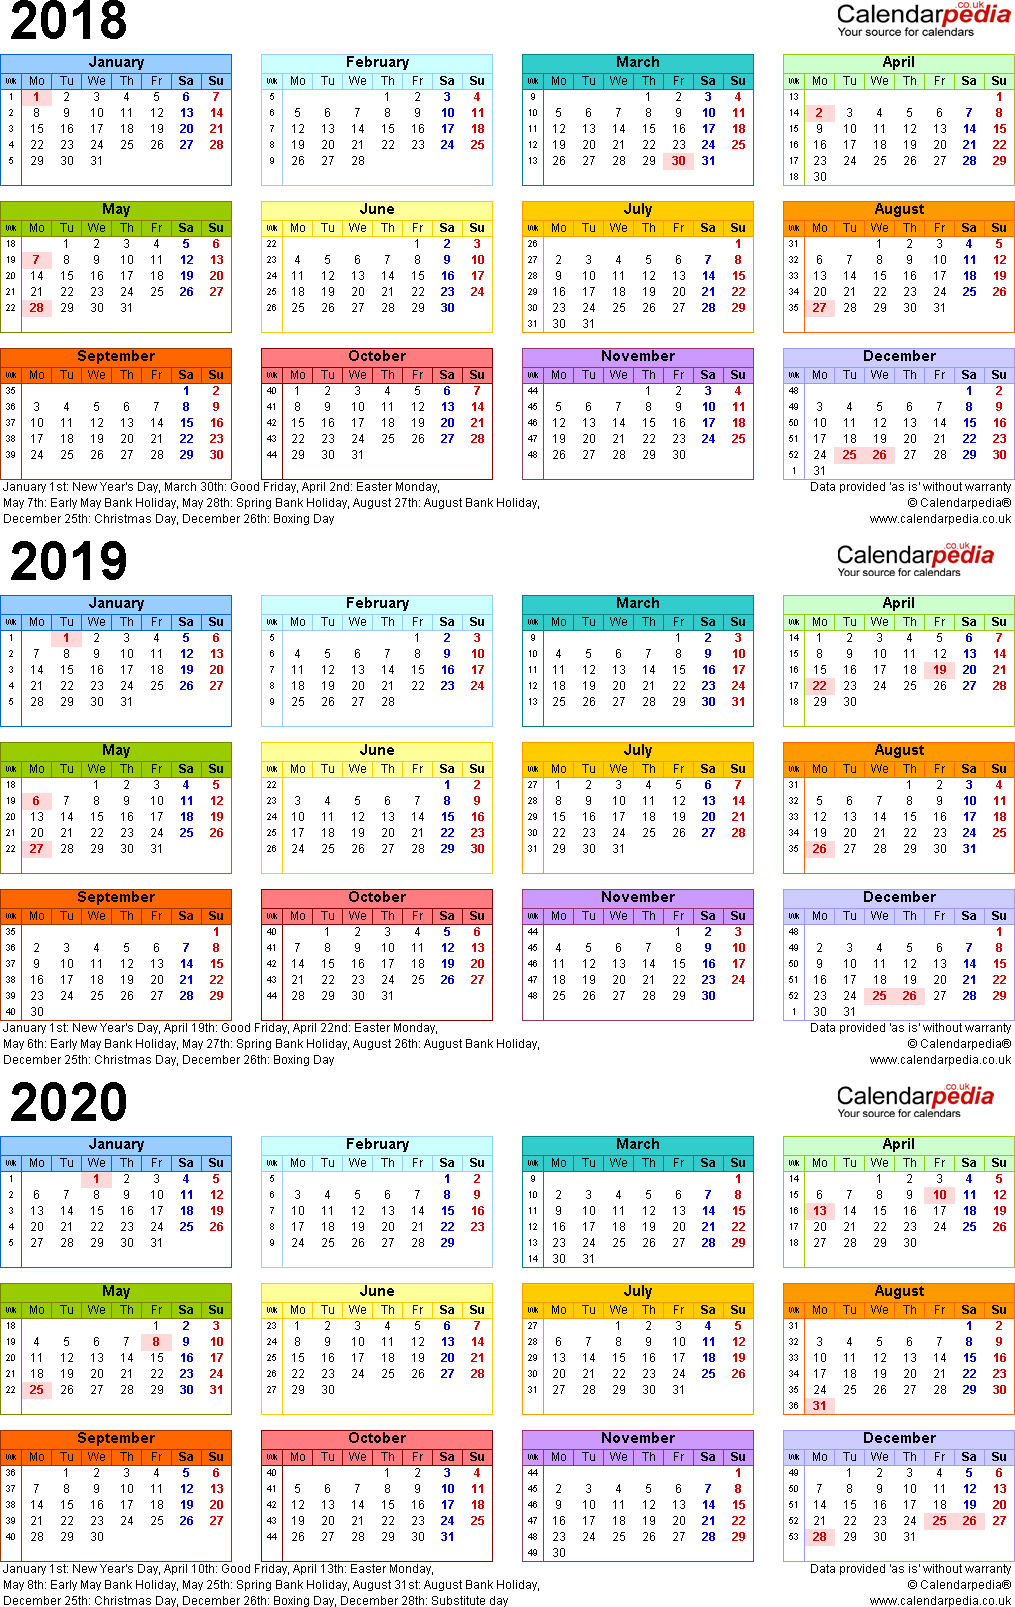 Calendario Serie A Tim 2019 Pdf.Three Year Calendars For 2018 2019 2020 Uk For Pdf